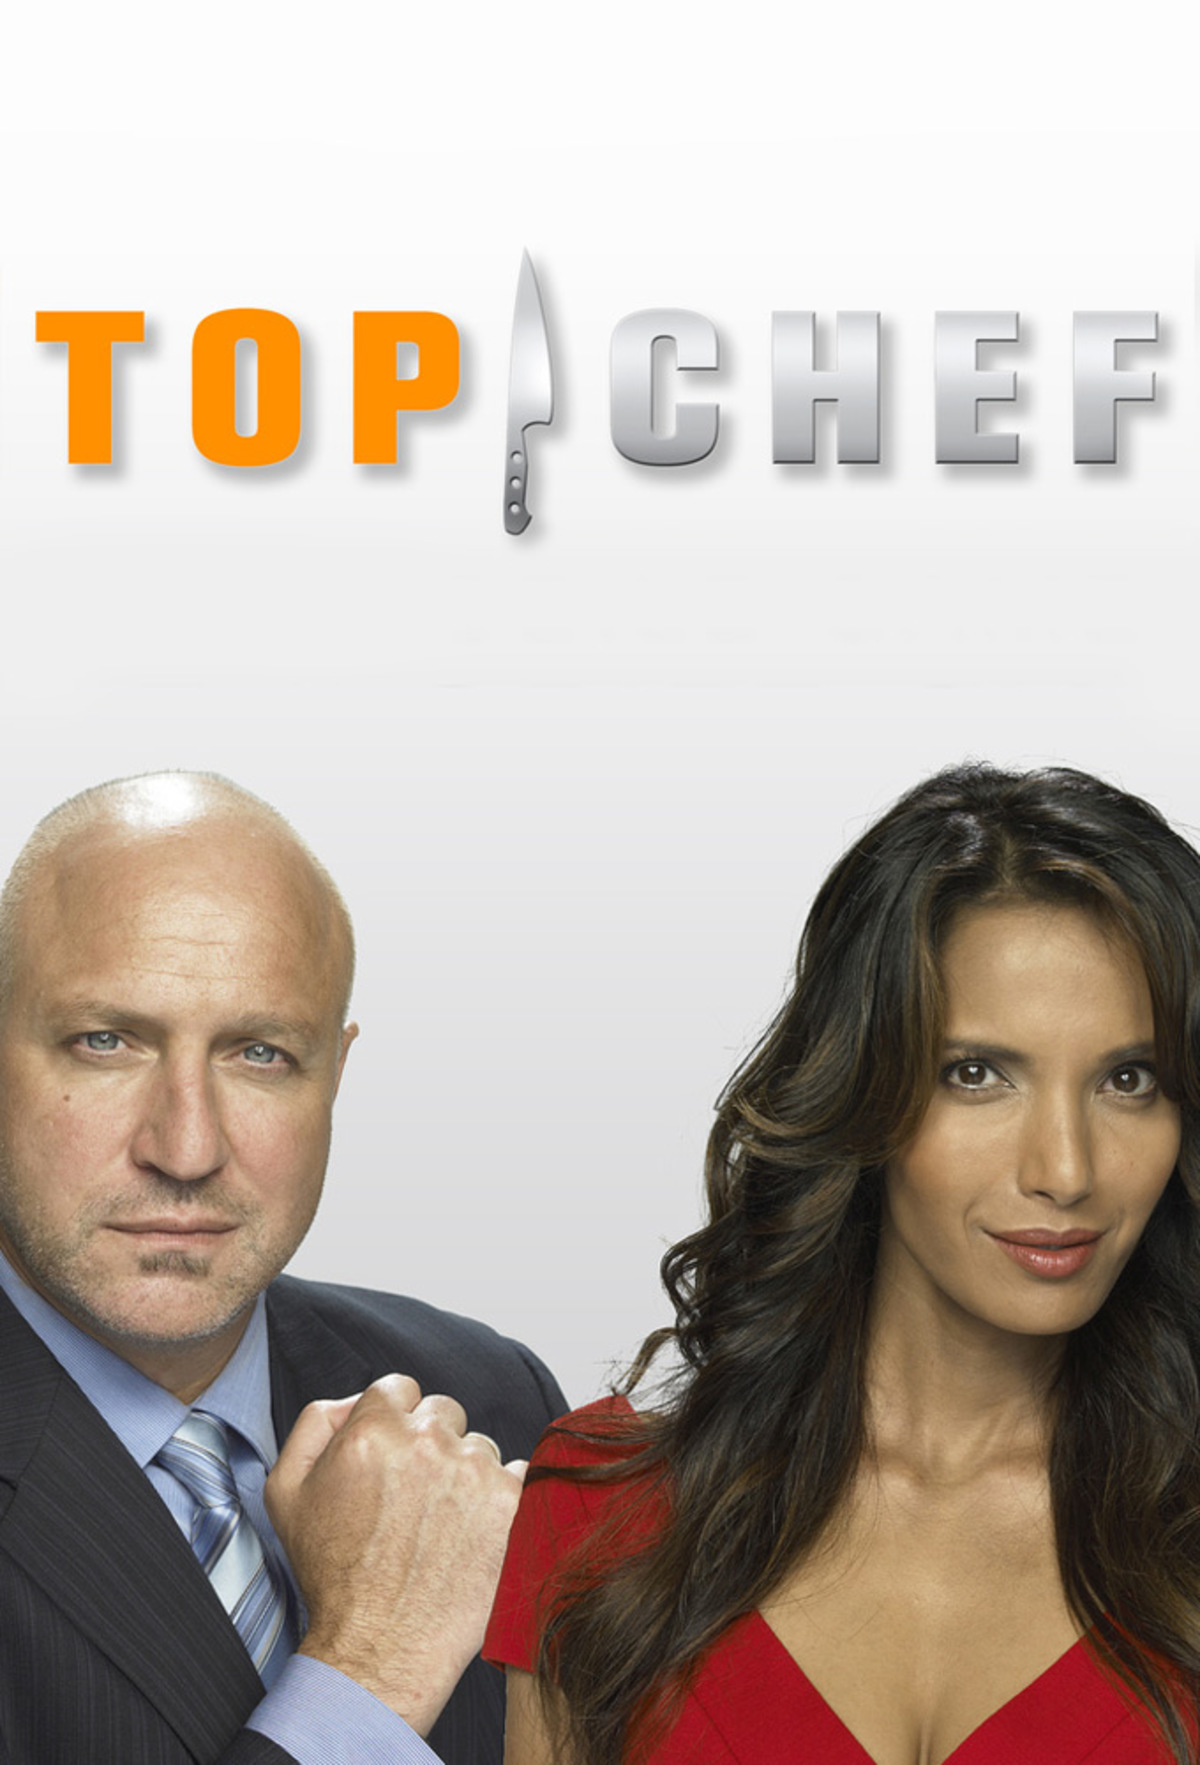 Top Chef - Season 17 Episode 7